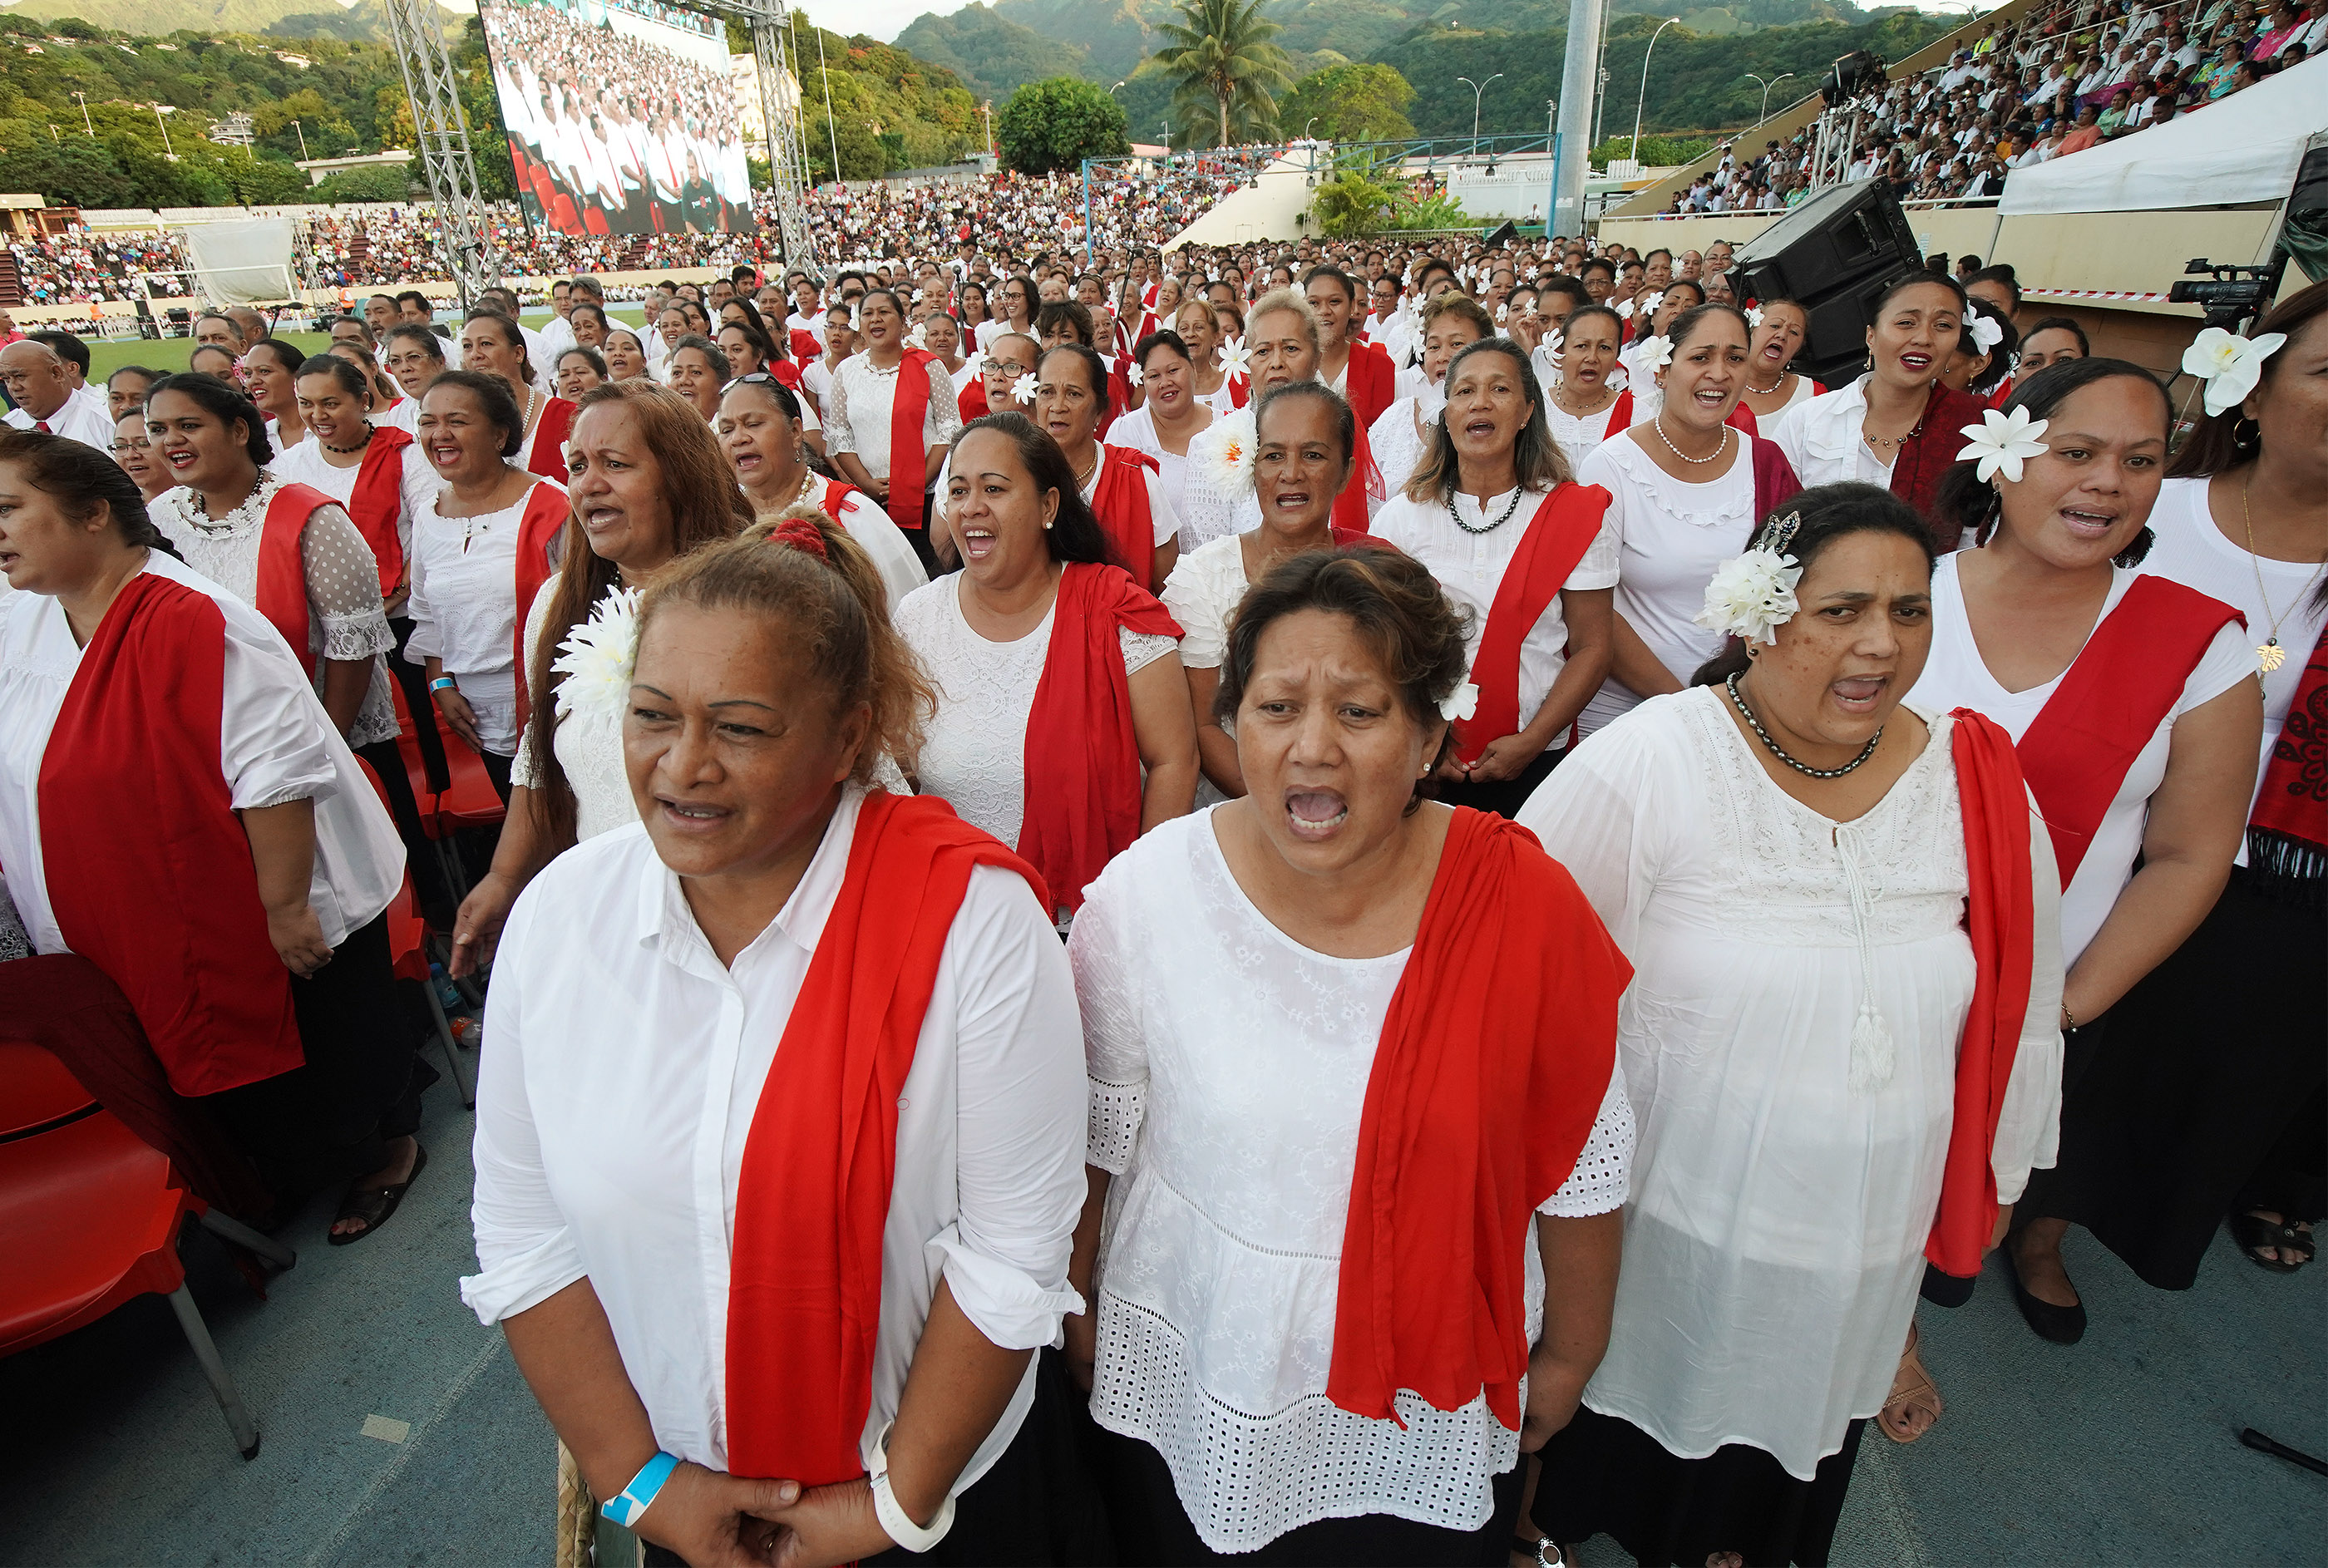 A combined choir sings during a Tahiti cultural program in Papeete, Tahiti, on May 24, 2019.